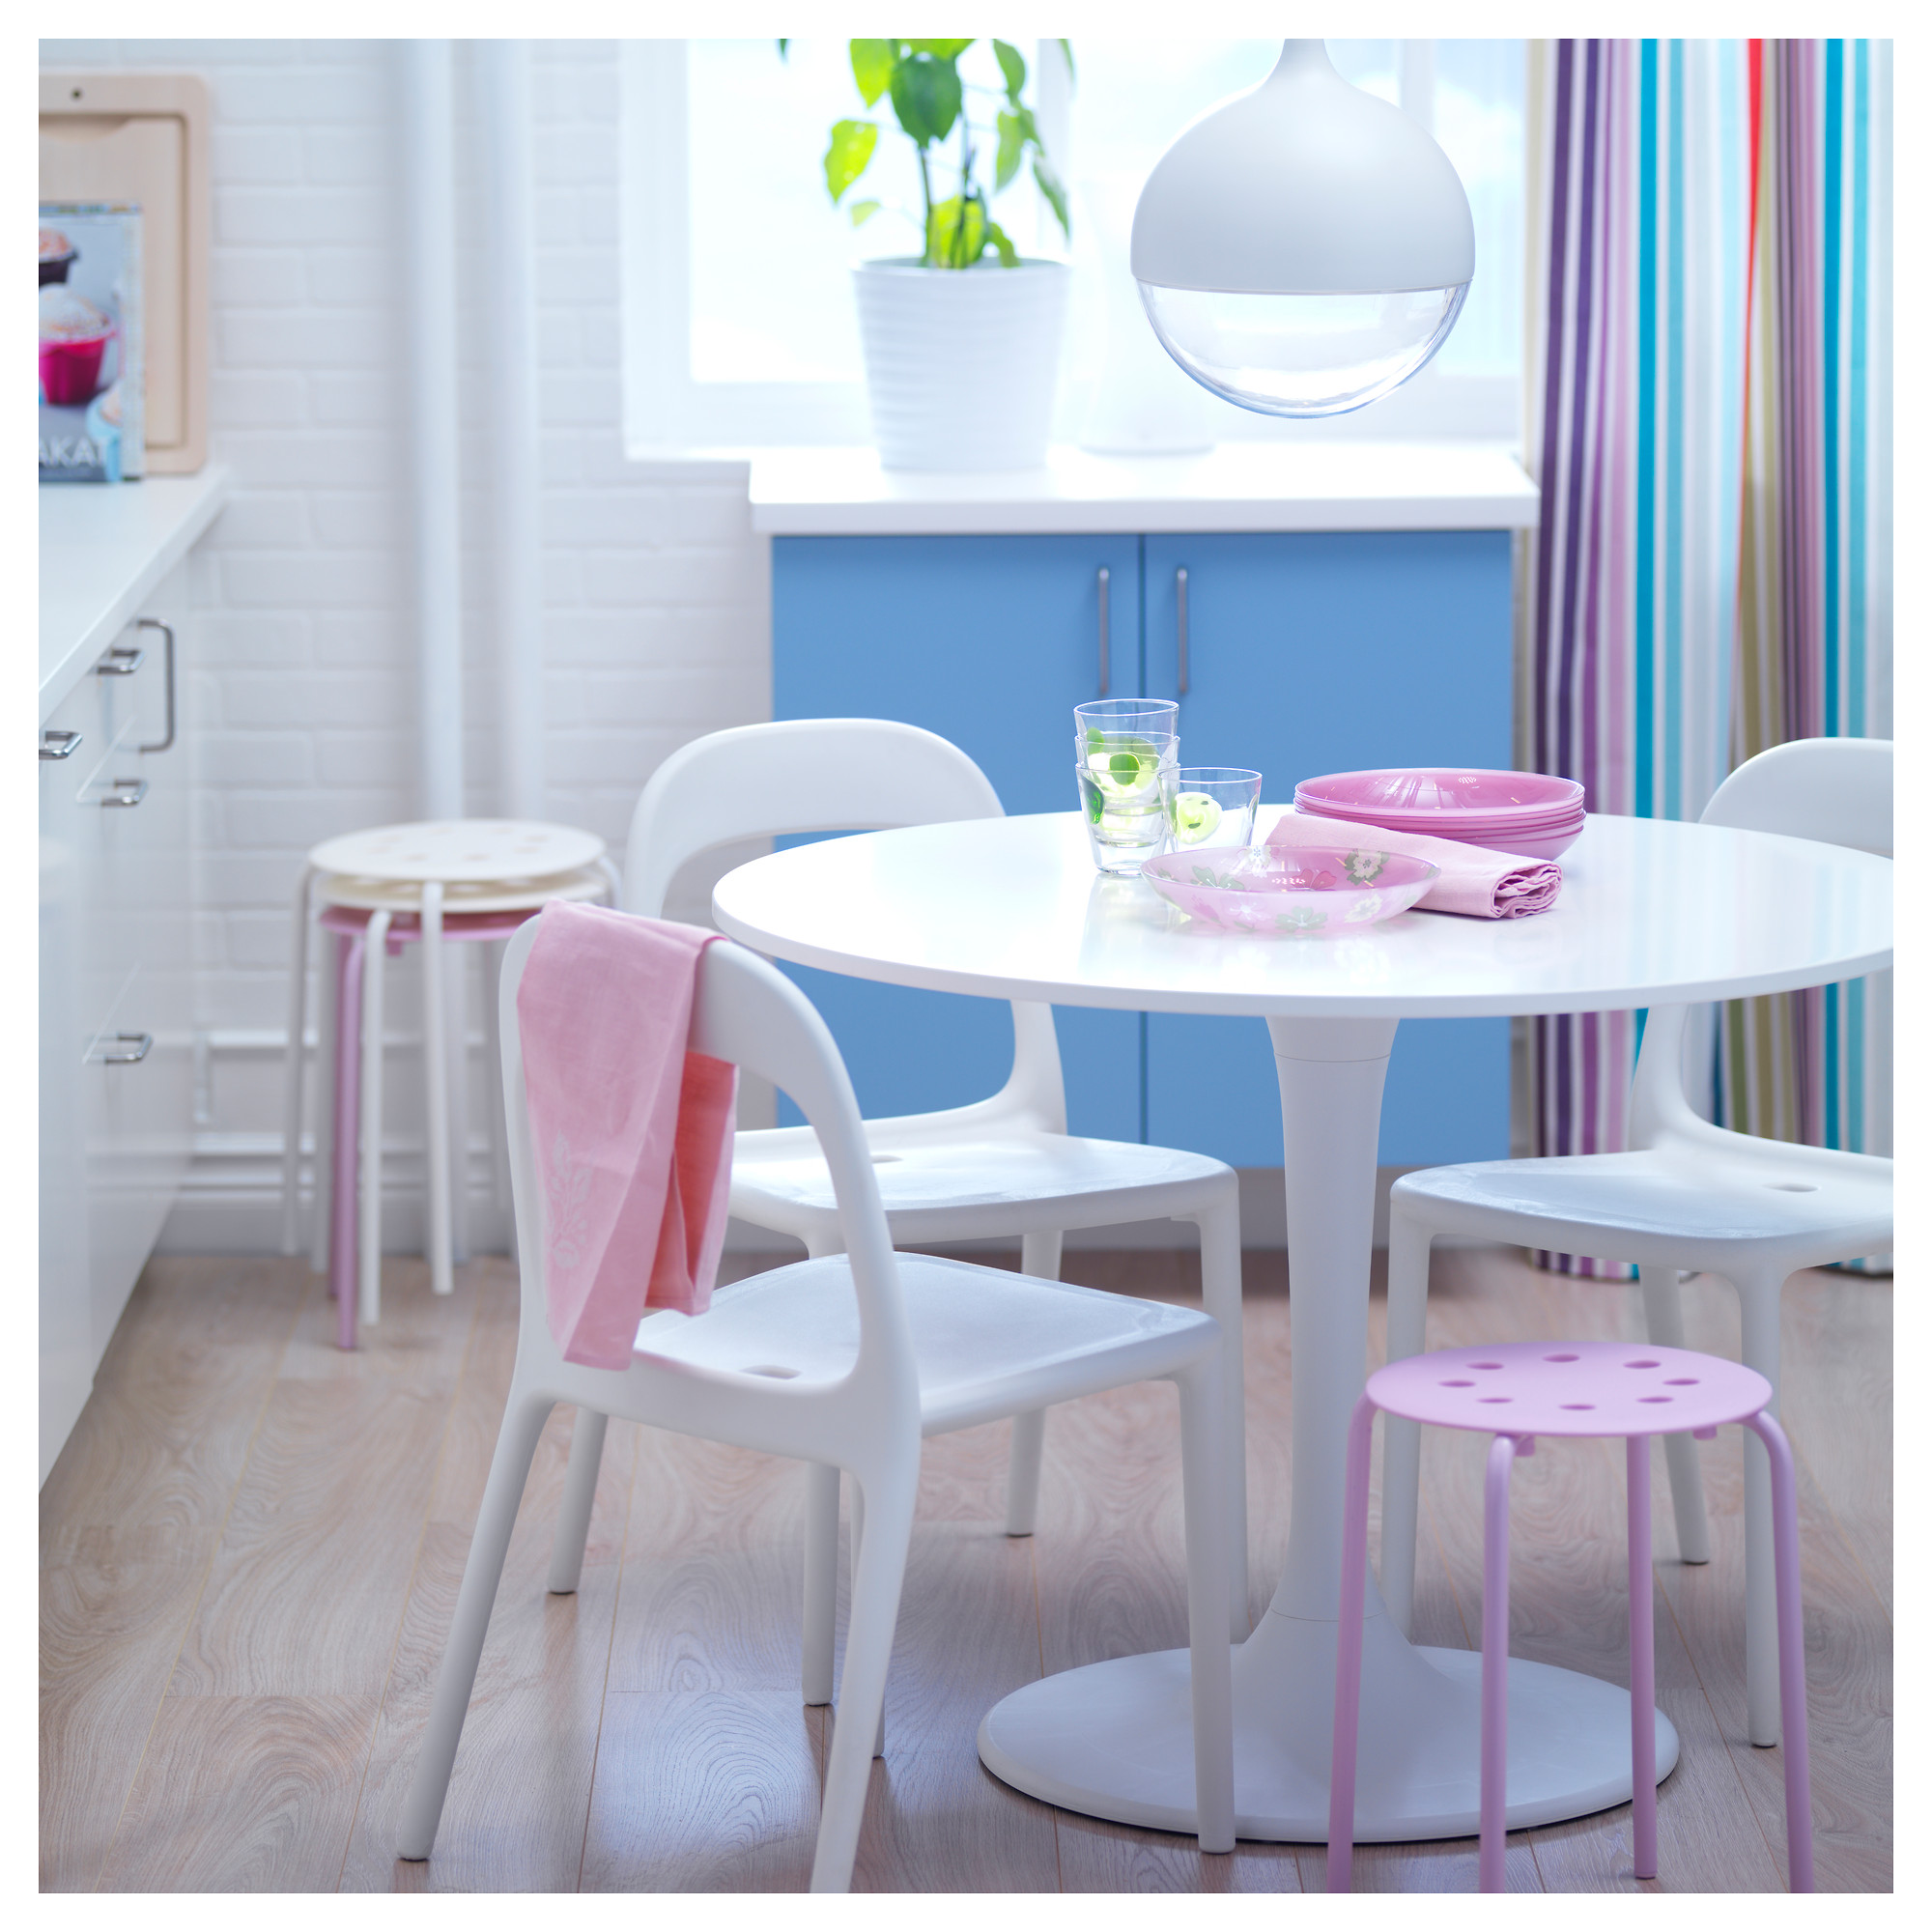 Modern Ikea Tulip Table HomesFeed : Colorful Kitchen Design With White Ikea Tulip Table And Chairs from homesfeed.com size 2000 x 2000 jpeg 519kB